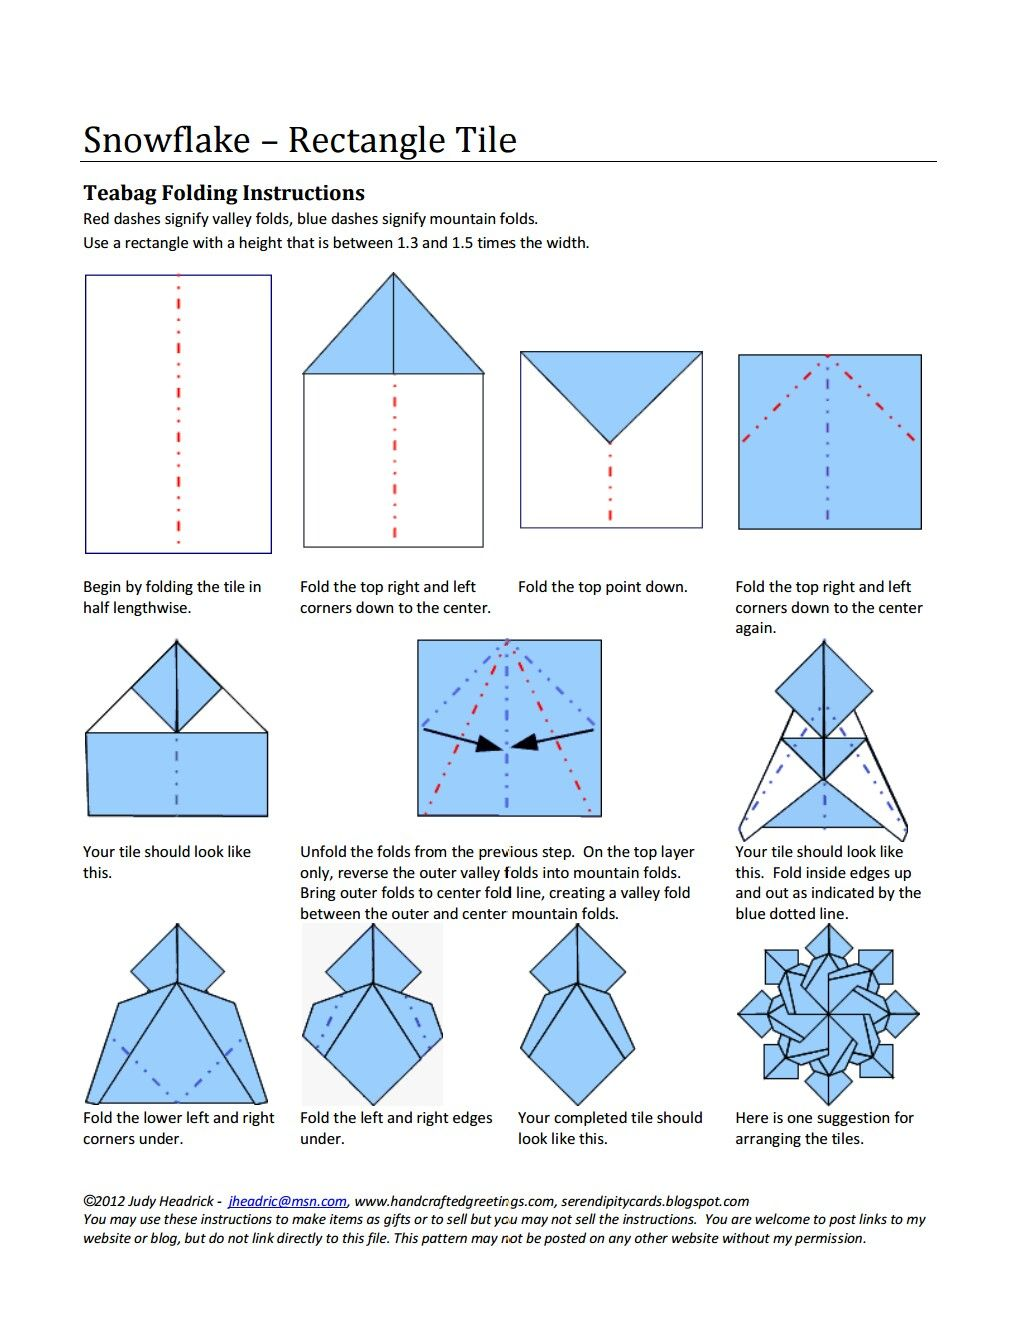 Pin by bine on fold it pinterest origami origami diagrams origami stars scrapbook cards origami diagrams card ideas envelope snowflakes paper crafts filigree mandalas jeuxipadfo Image collections